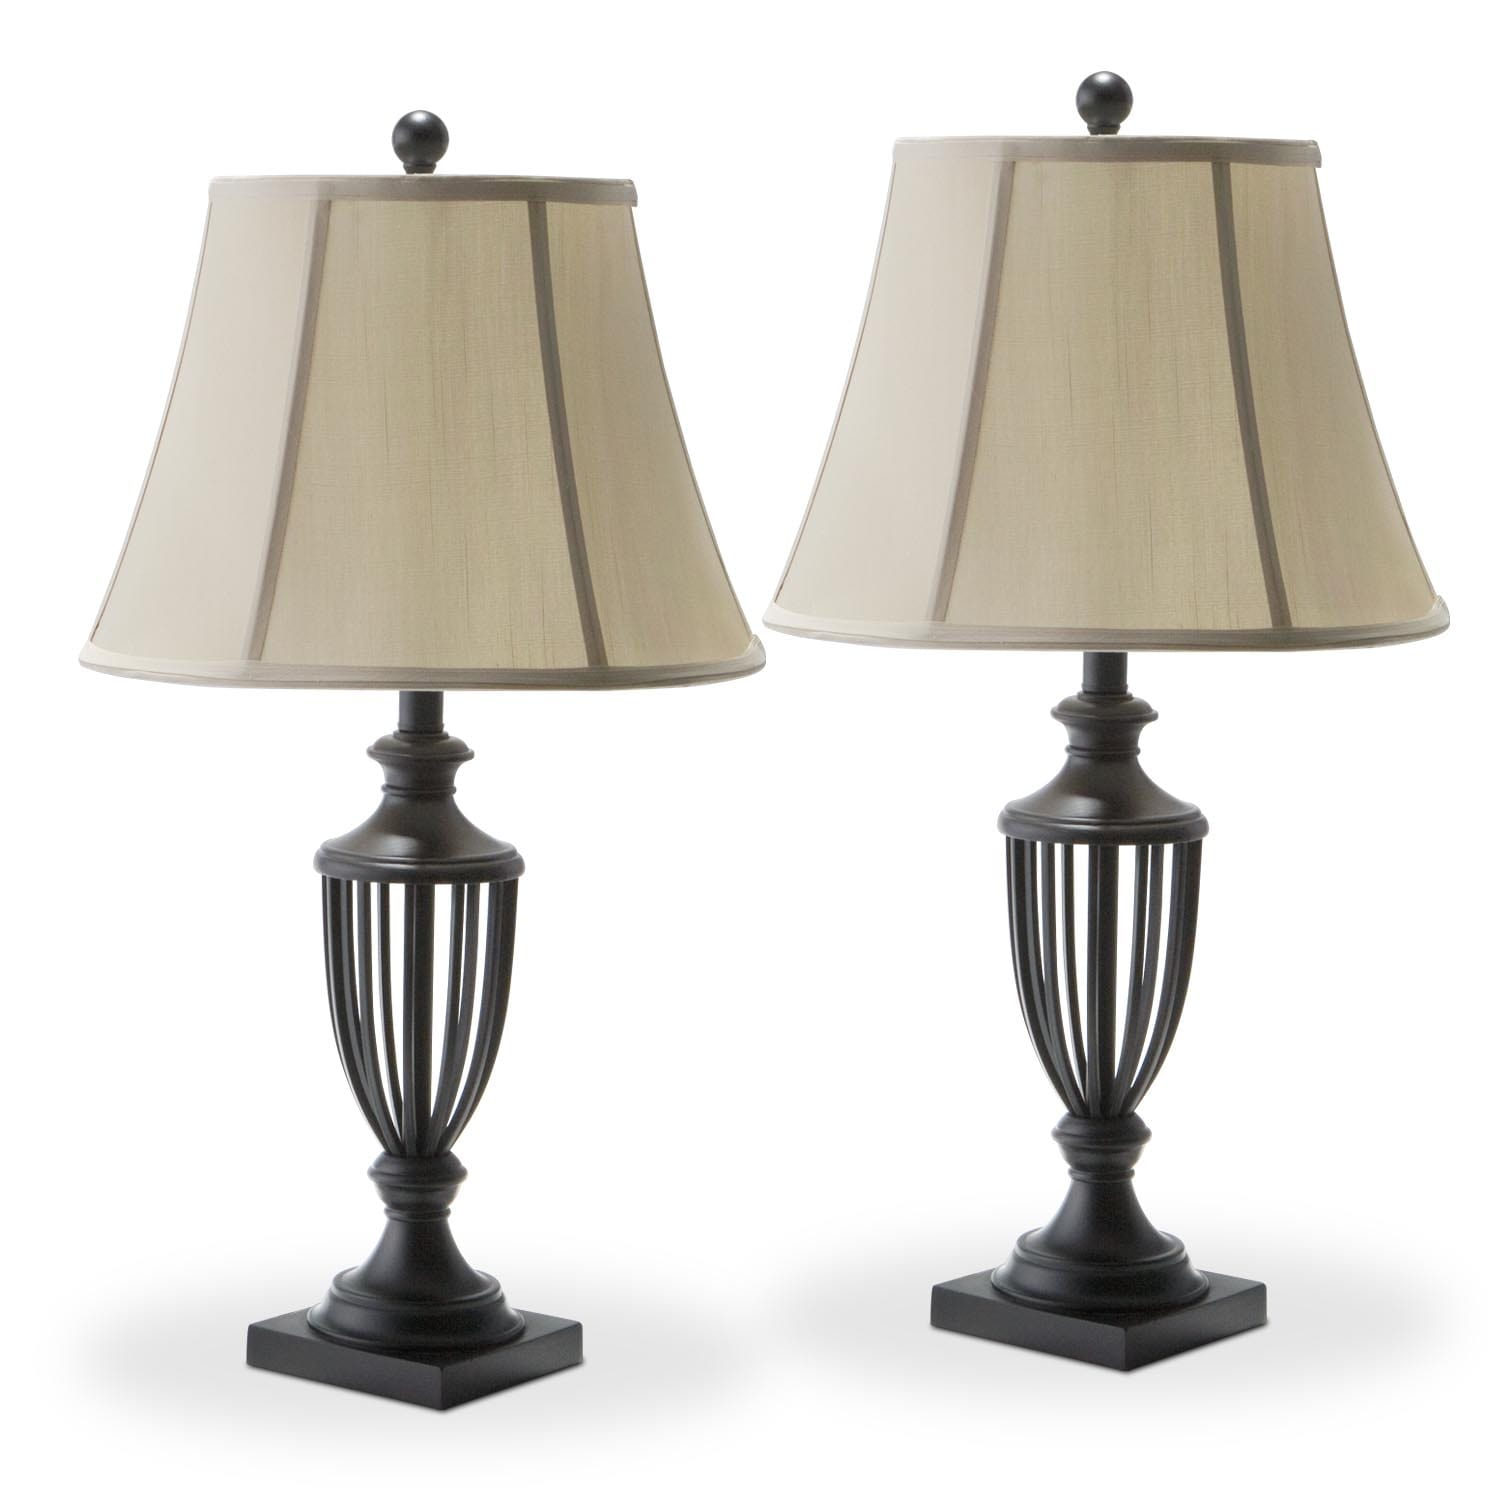 Living Room Table Lamp: Mason 2-Pack Table Lamps